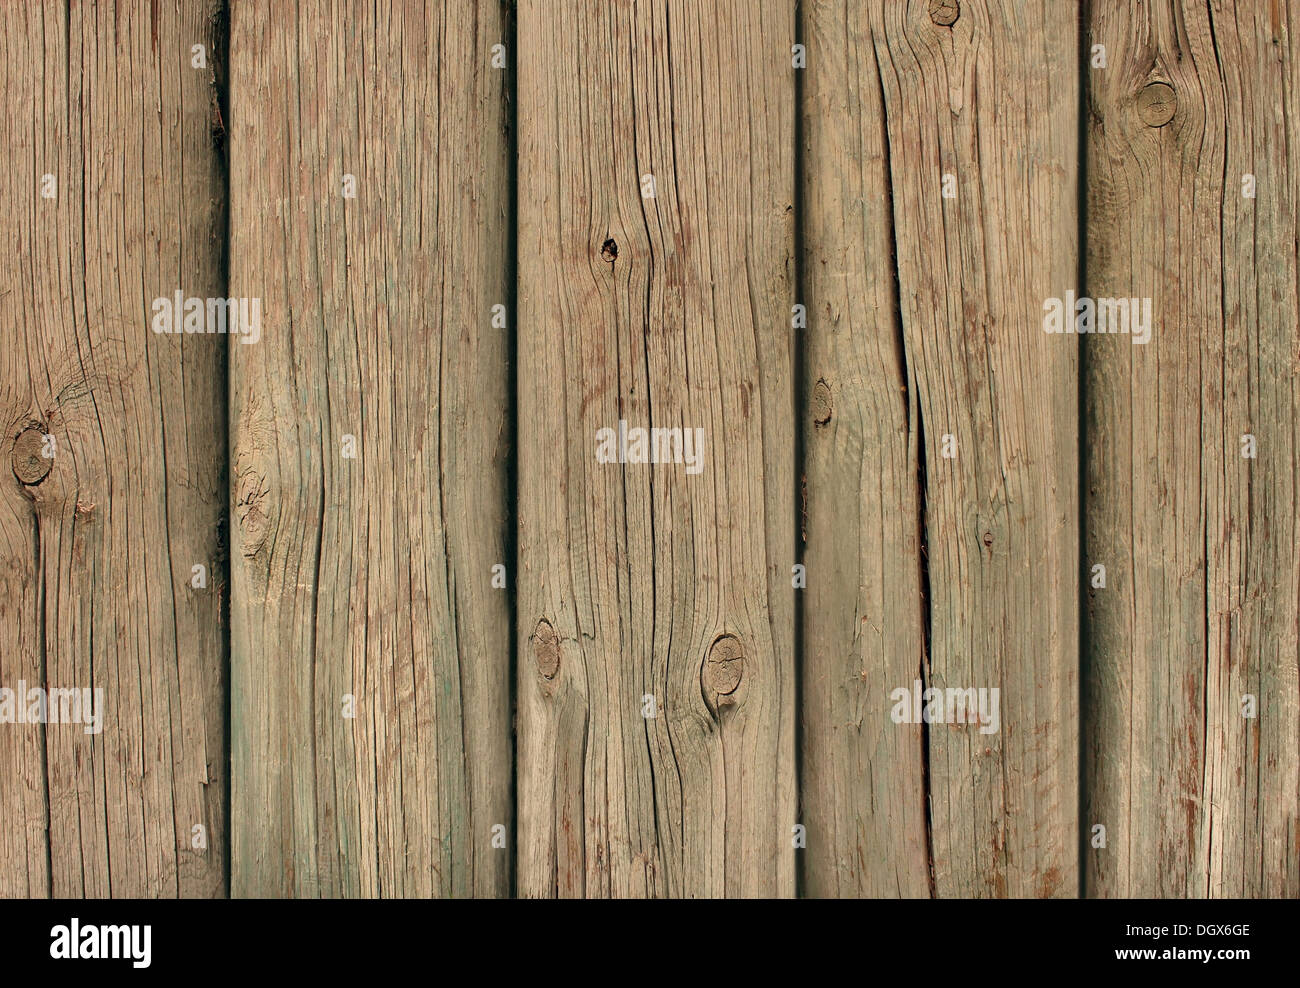 Old weathered wood background with thick cut tree trunks as a grunge distressed antique wall of planks in a vertical - Stock Image